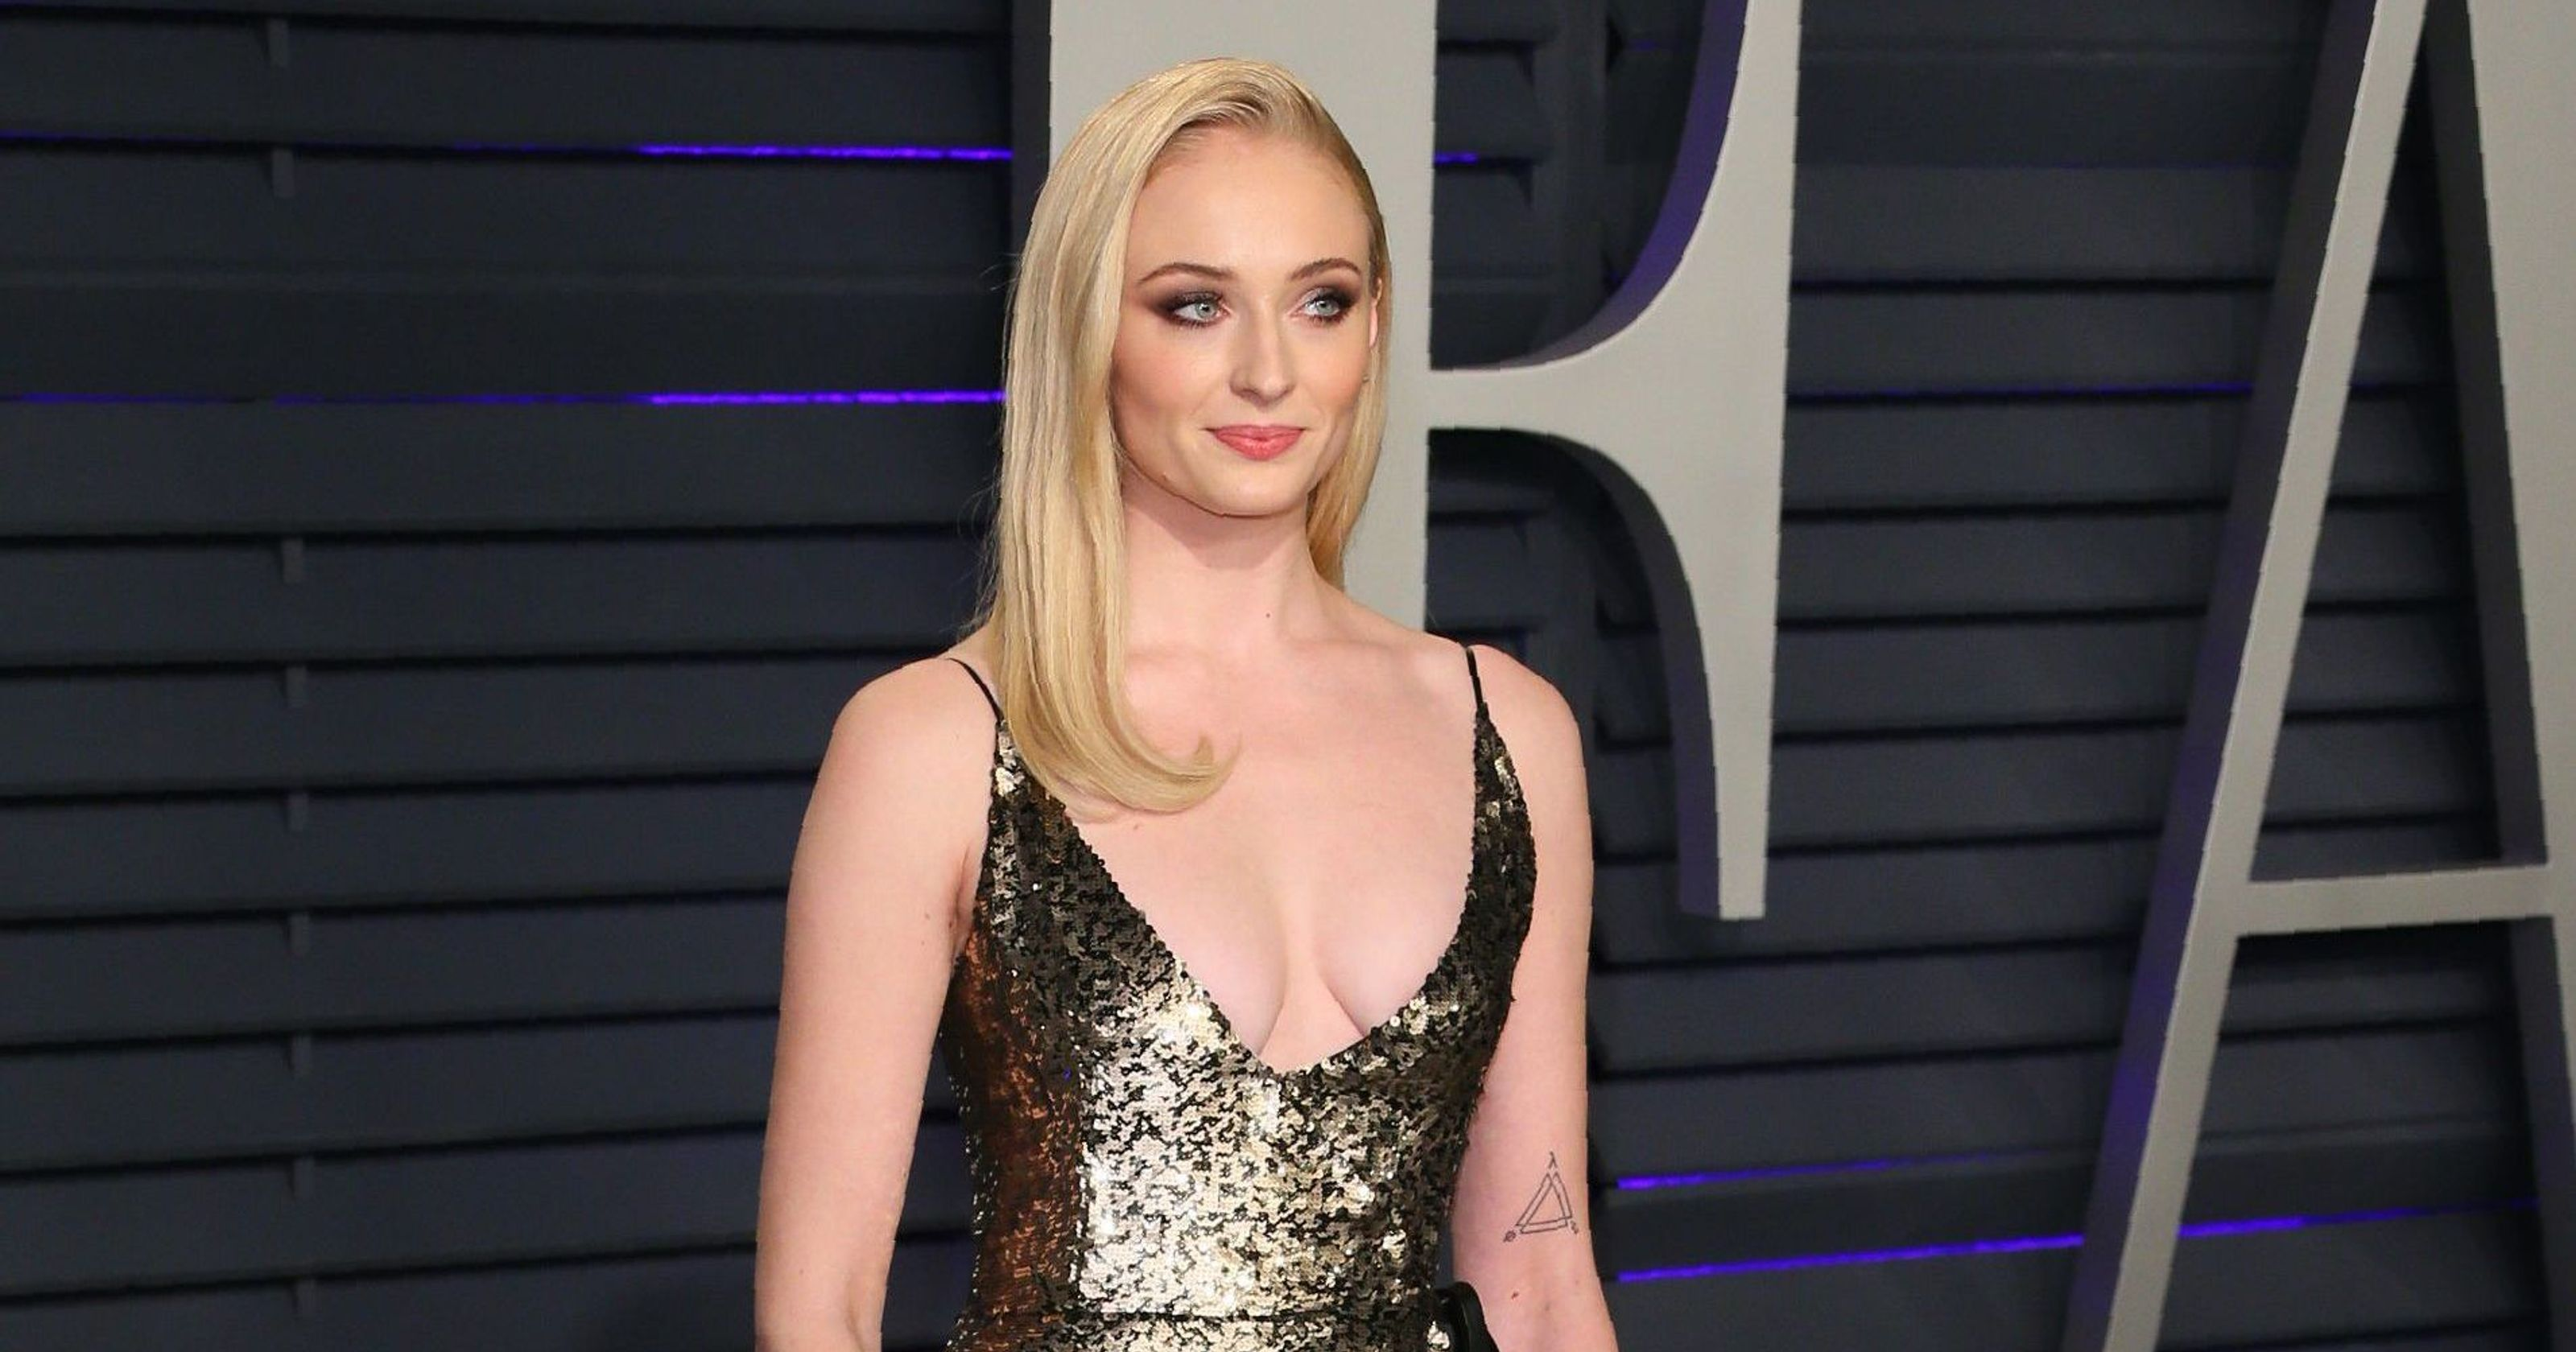 'Game of Thrones' star Sophie Turner chugs wine on a jumbotron, impresses Drake